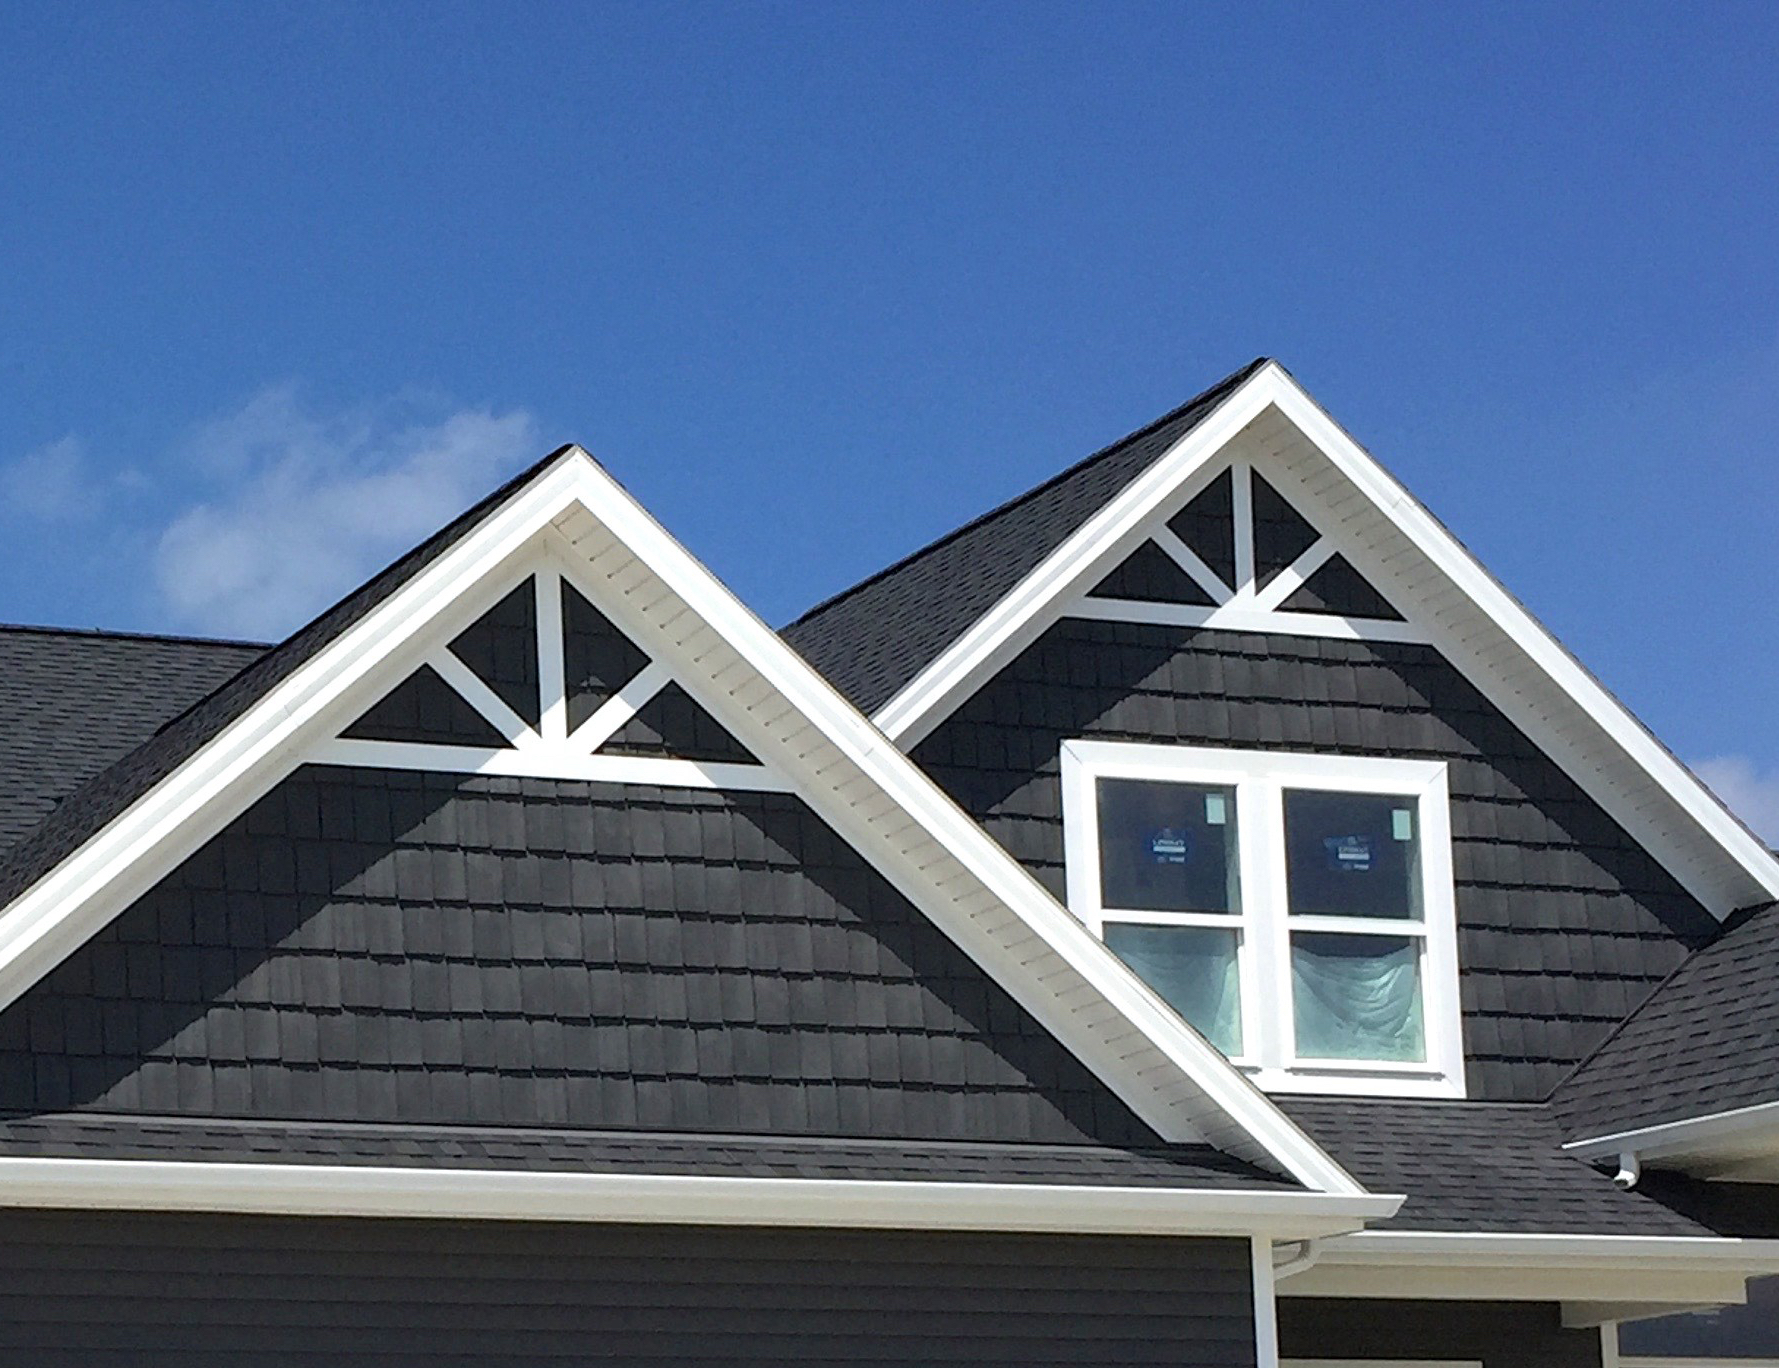 Royal ironstone dark grey siding and dark grey shakes for Roof accents